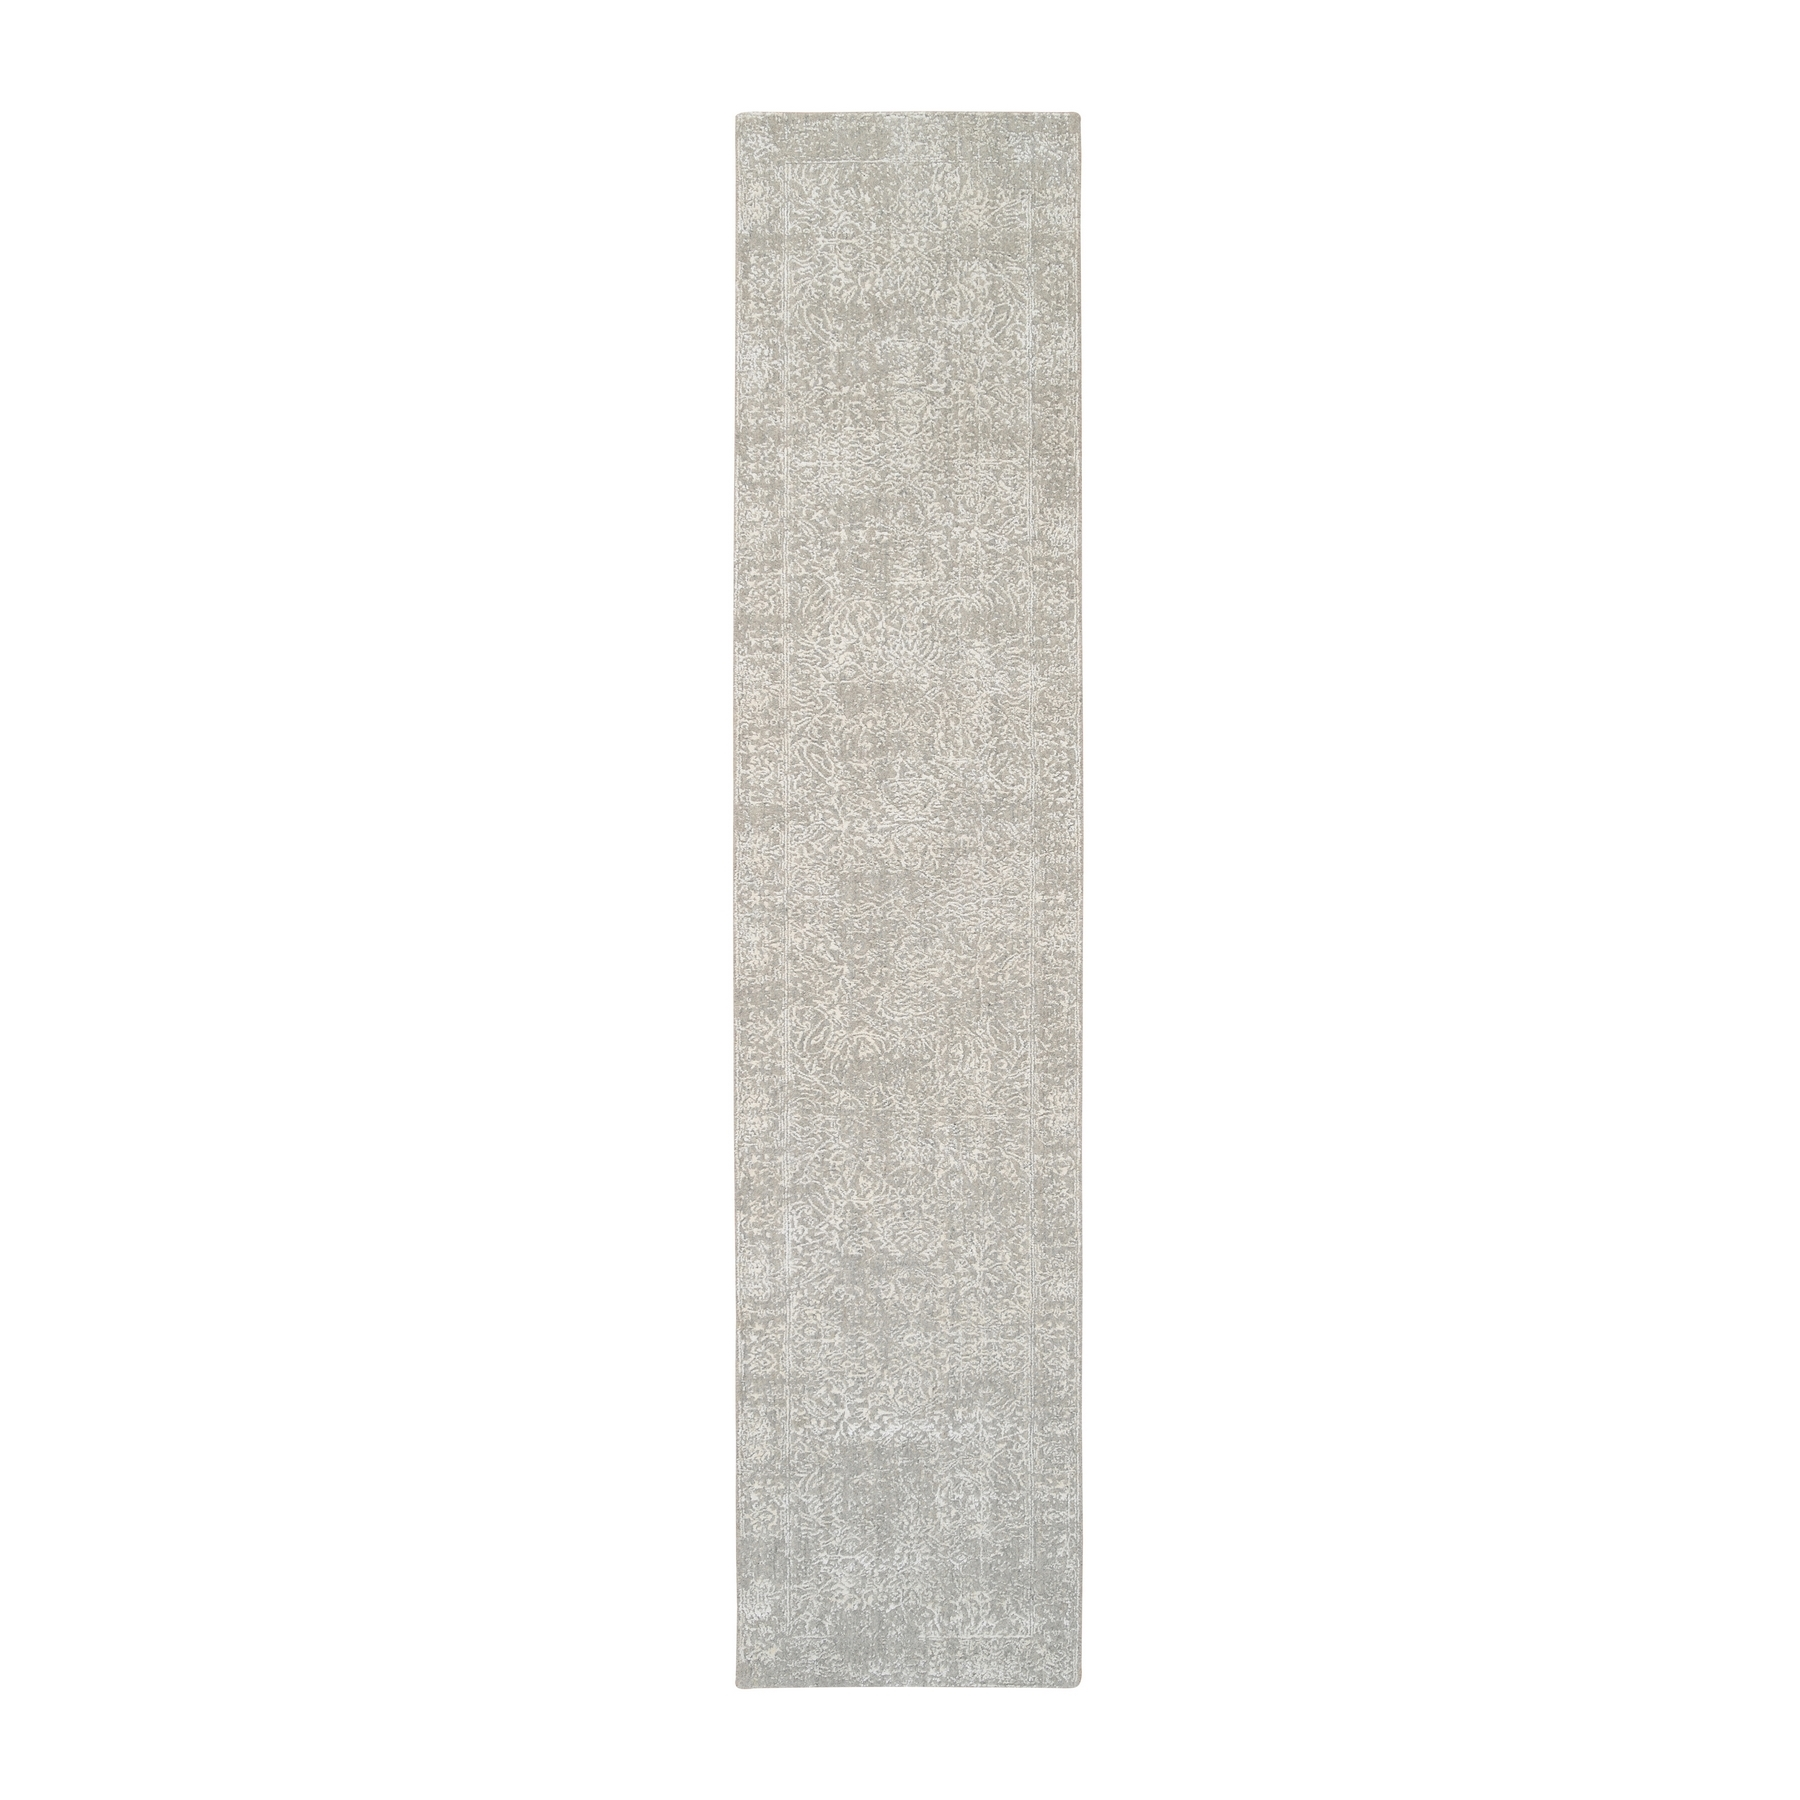 Mid Century Modern Collection Hand Loomed Beige Rug No: 1126556